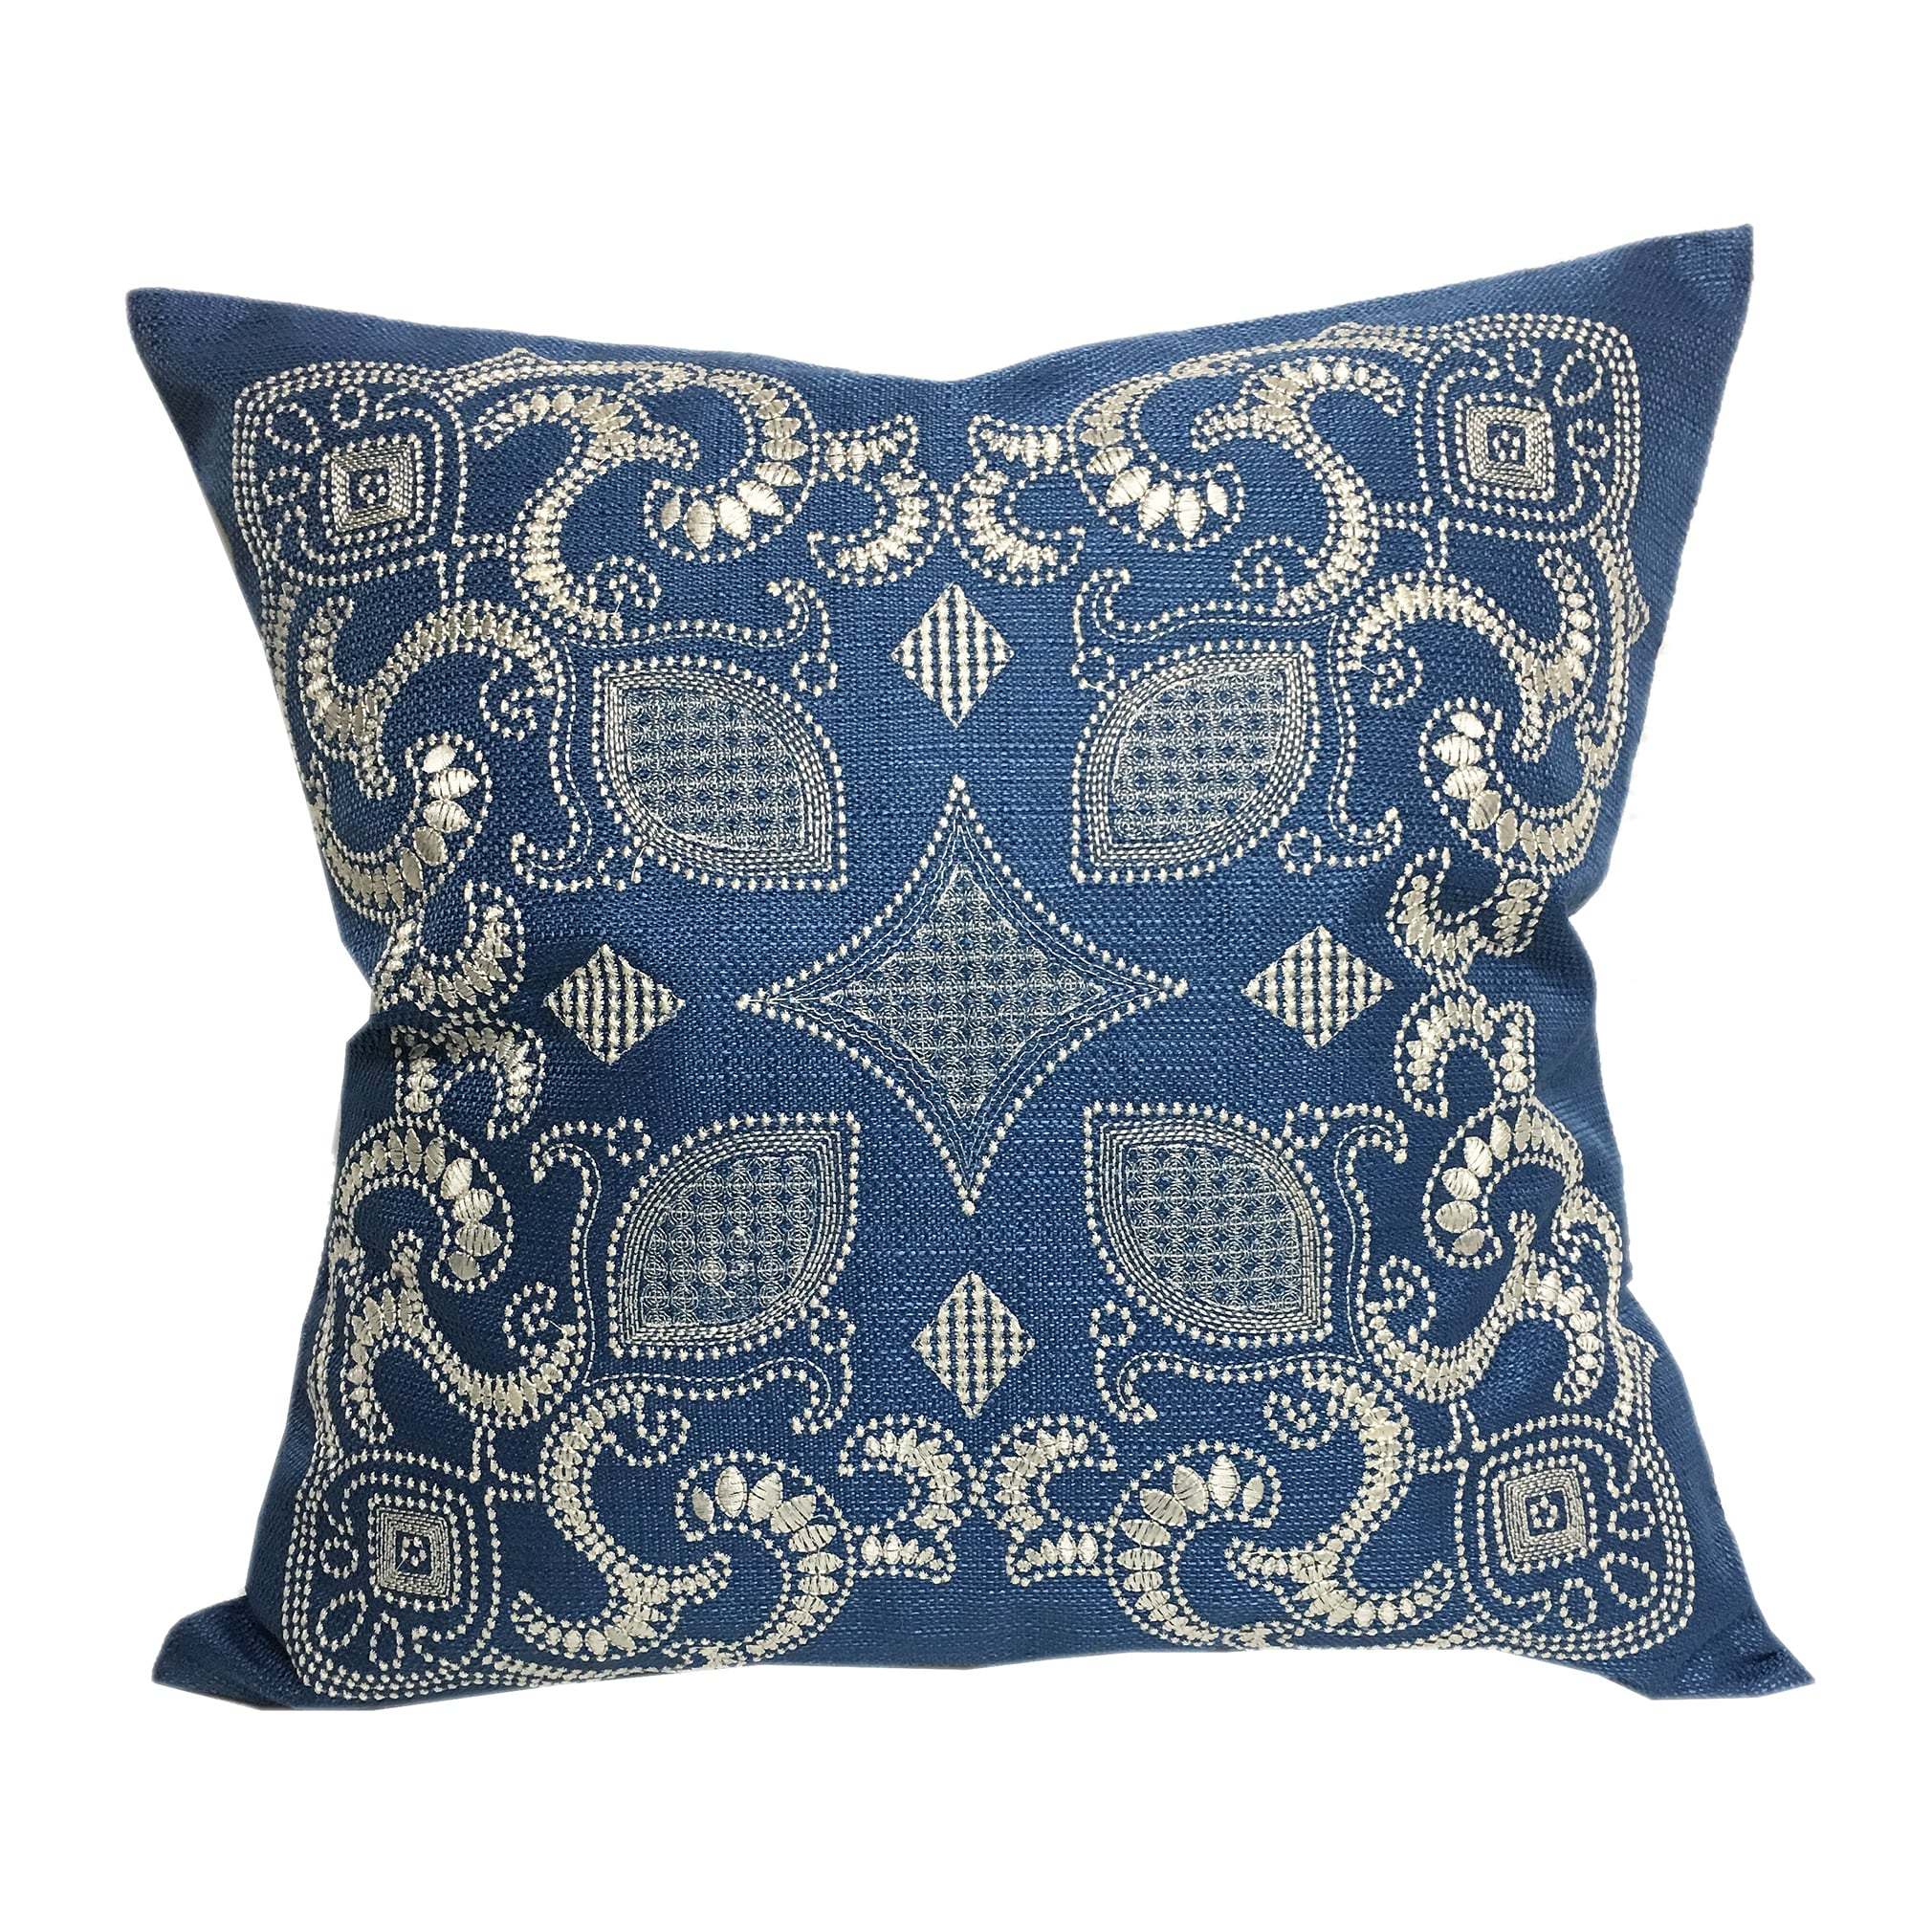 Home Accent Pillows Sapphire Blue 20-inch Woven Embroidered Throw Pillow (Blue)